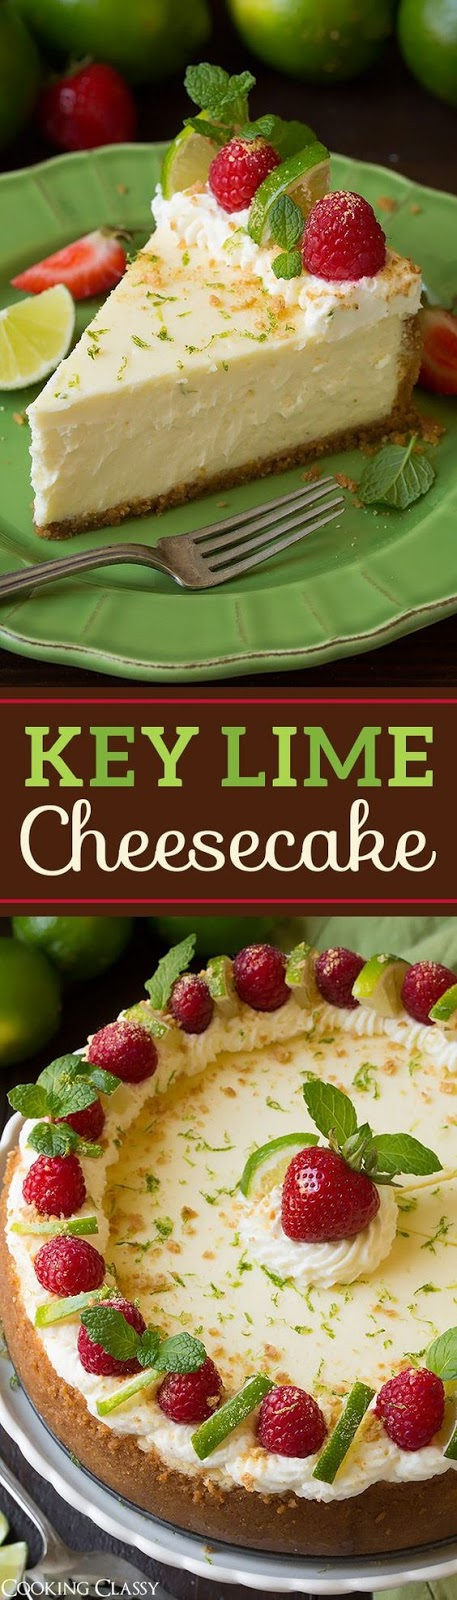 Key Lime Cheesecake Recipes